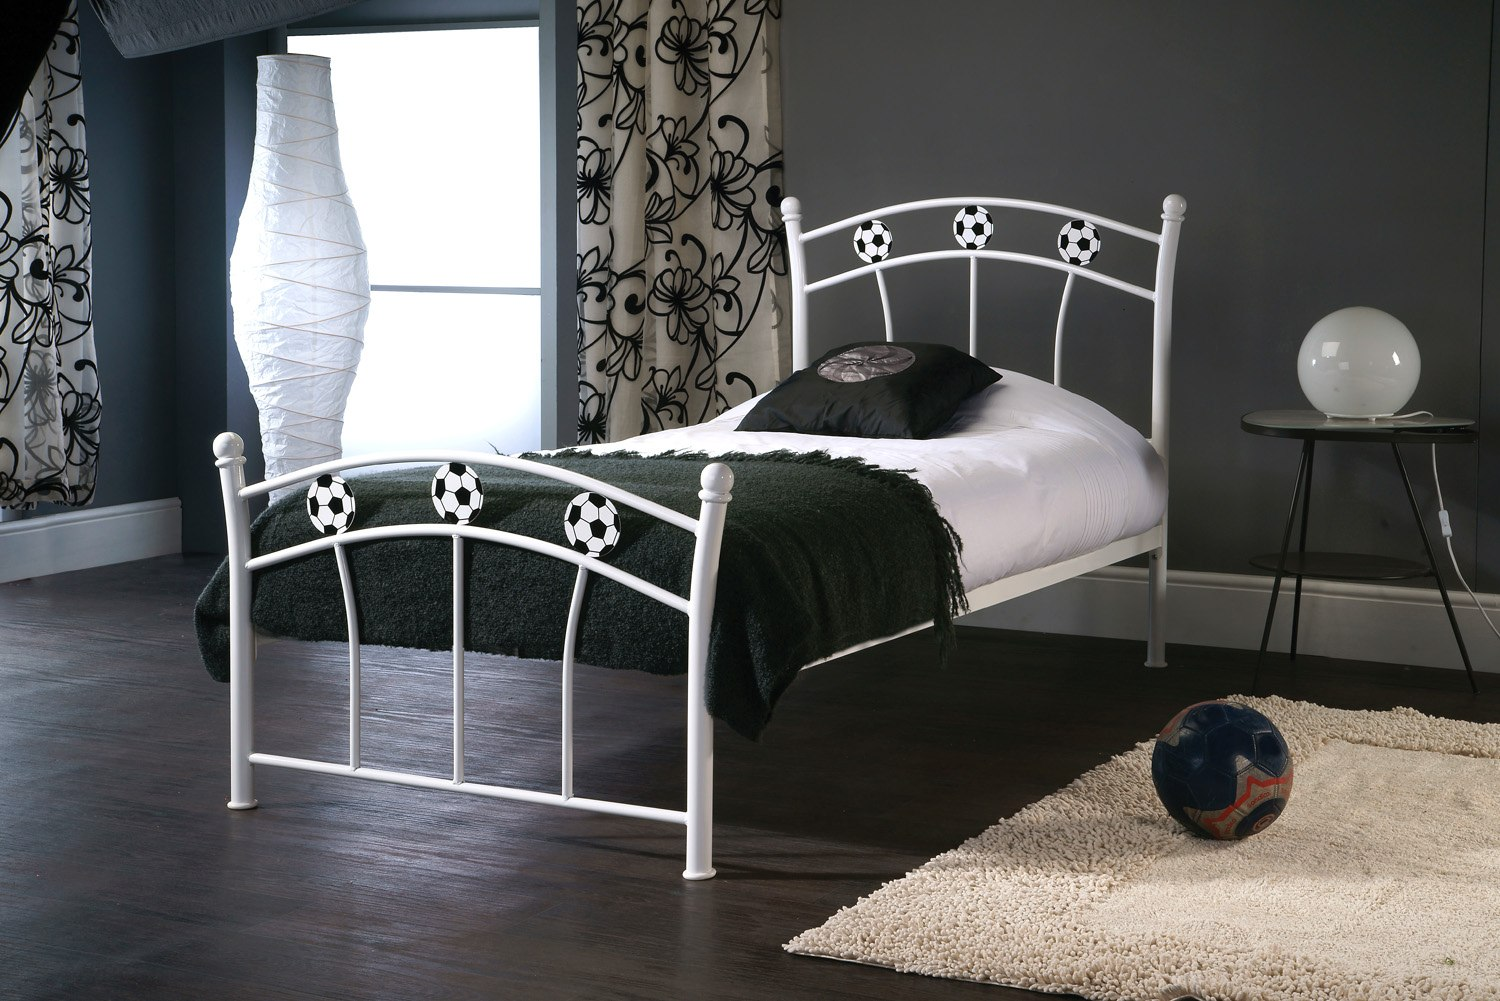 Soccer White Single Childs Bedframe available from the world of beds, askern, doncaster, south yorkshire